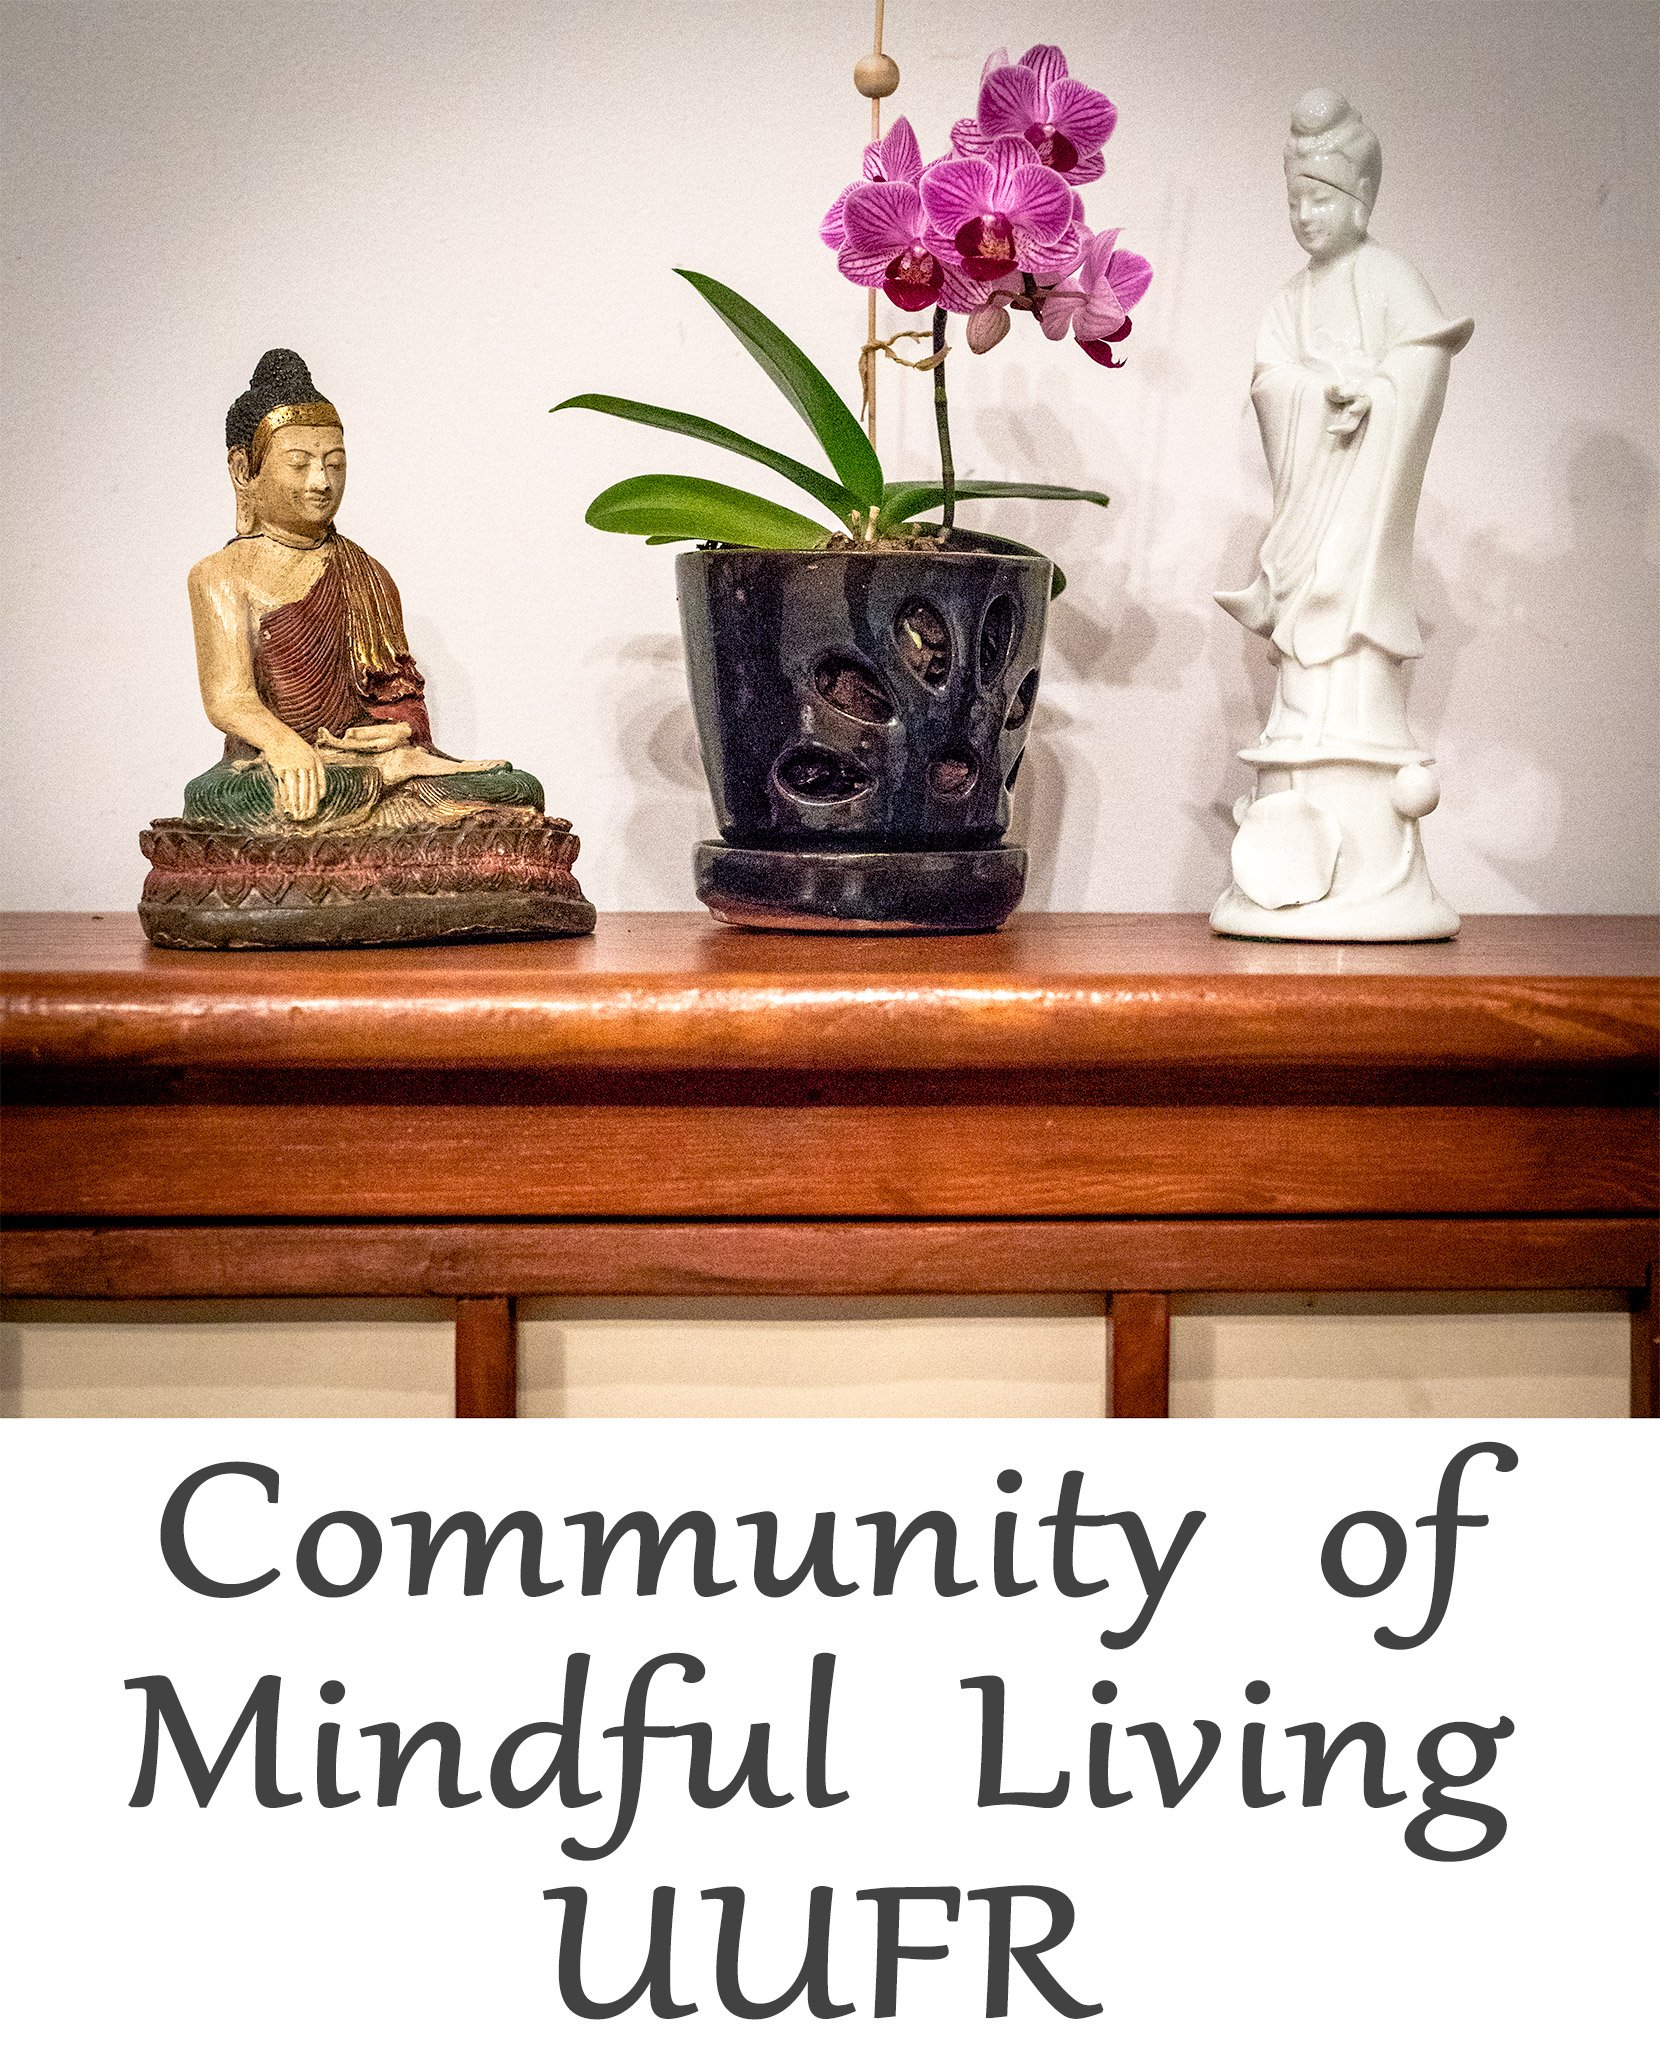 Community of Mindful Living – UUFR